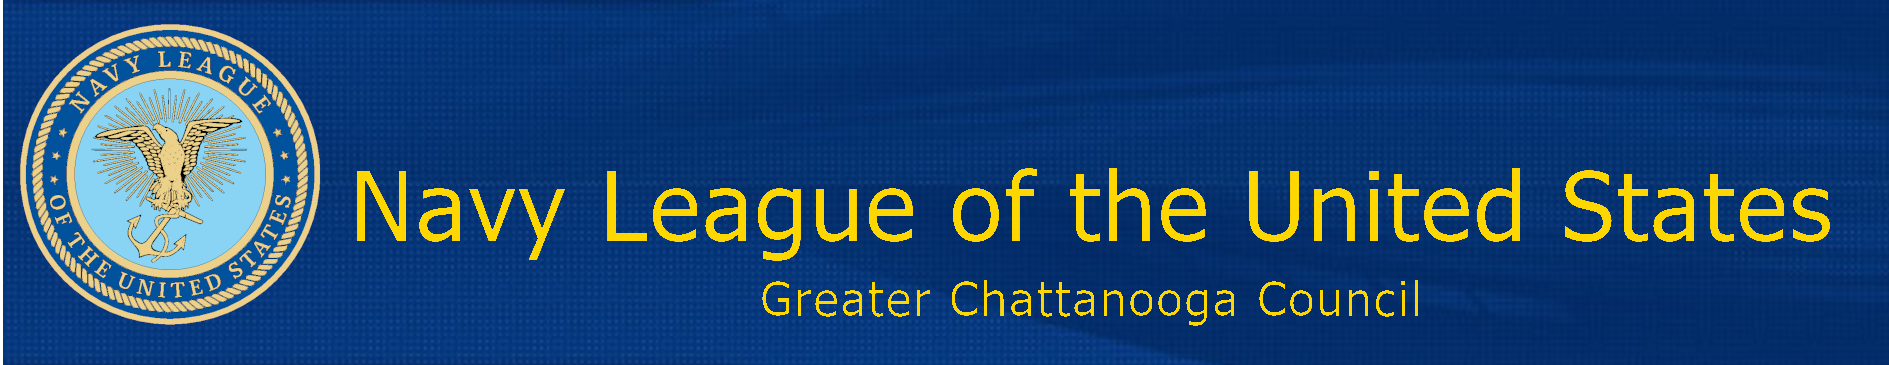 Navy League of the United States - Greater Chattanooga Council